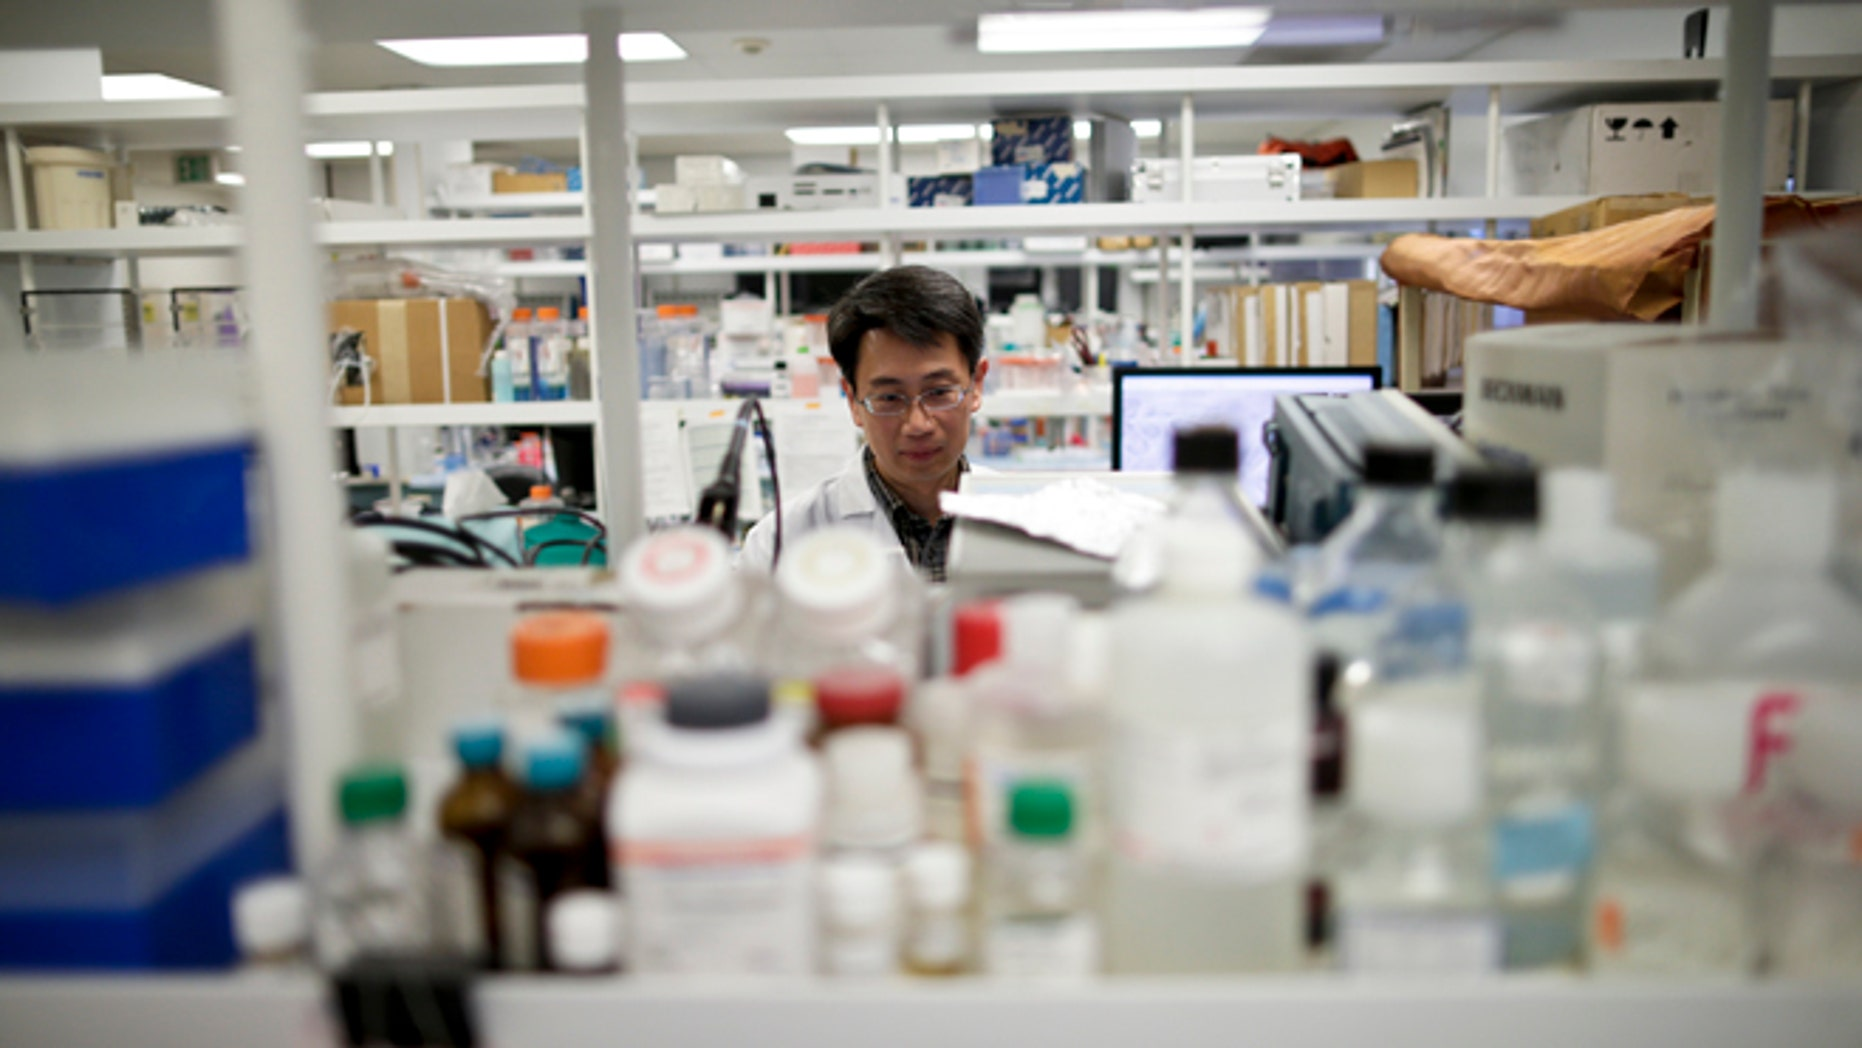 March 4, 2015: In this photo, research scientist Tony Huang works in a laboratory at Vertex Pharmaceuticals Inc. in San Diego.